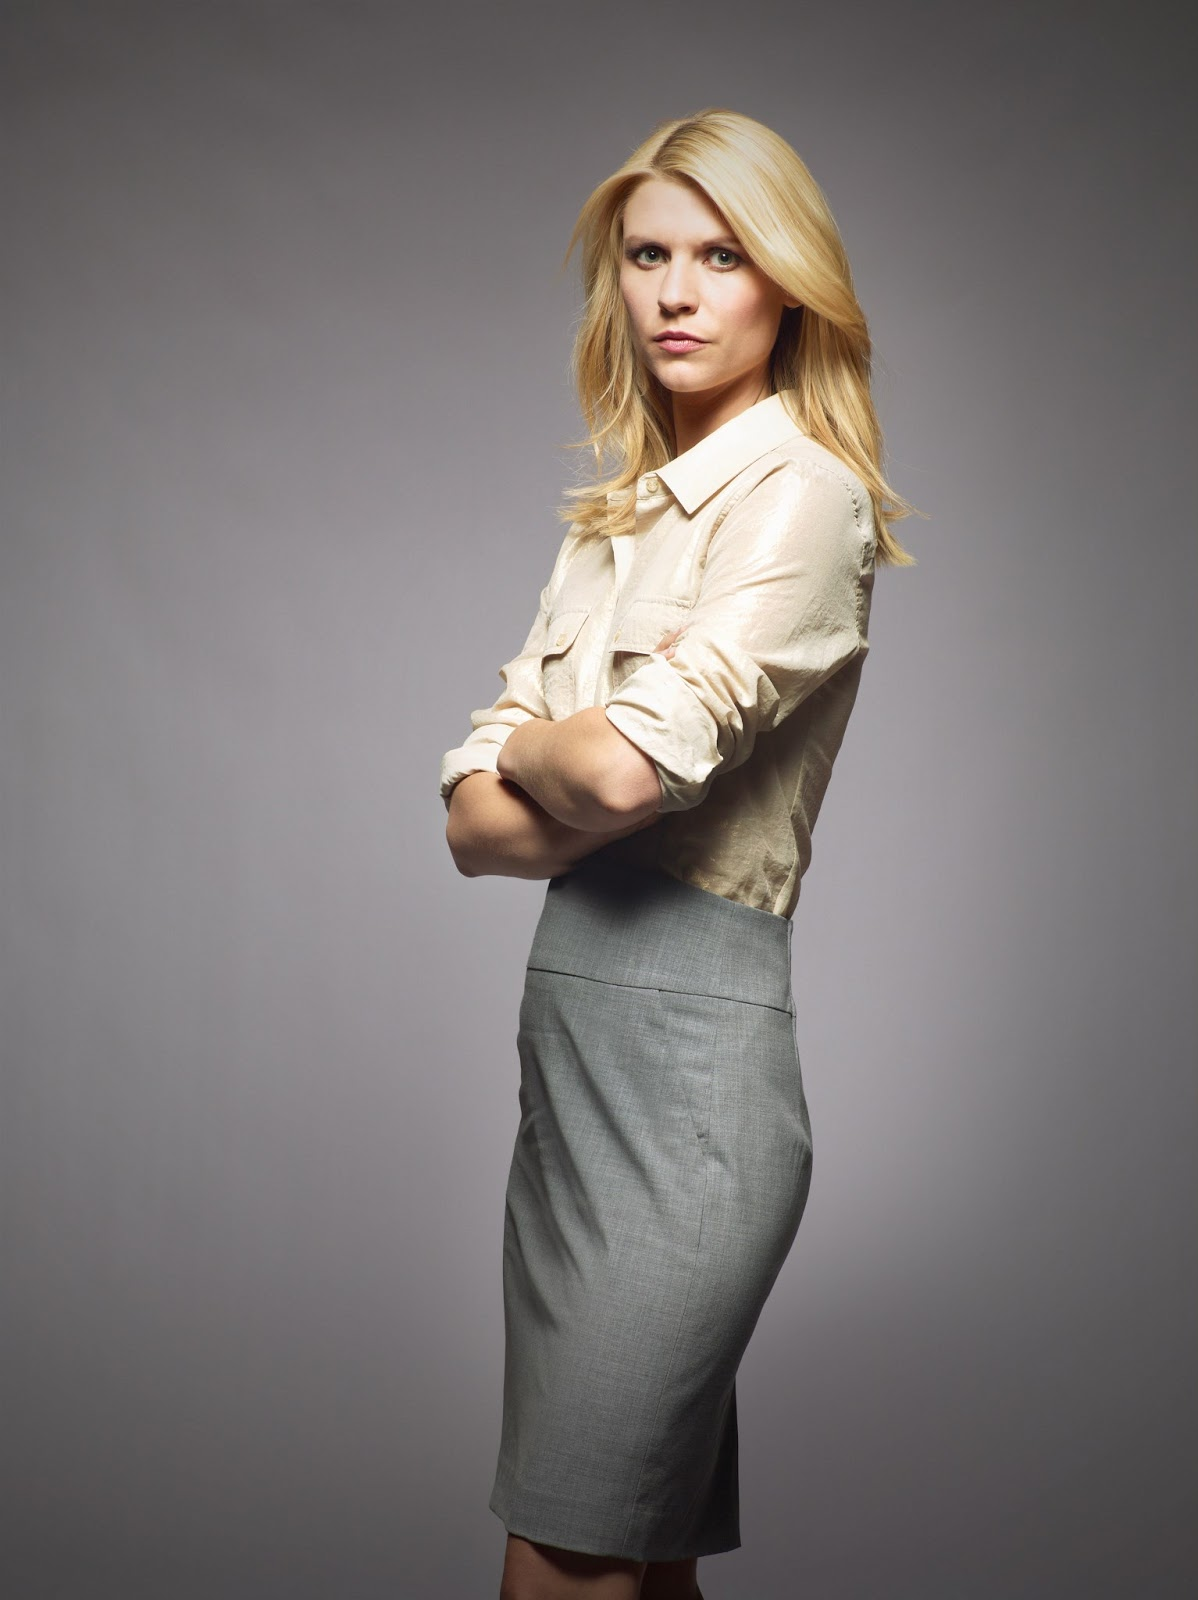 aboutnicigiri: Claire Danes as Carrie Mathison on Homeland Claire Danes Homeland